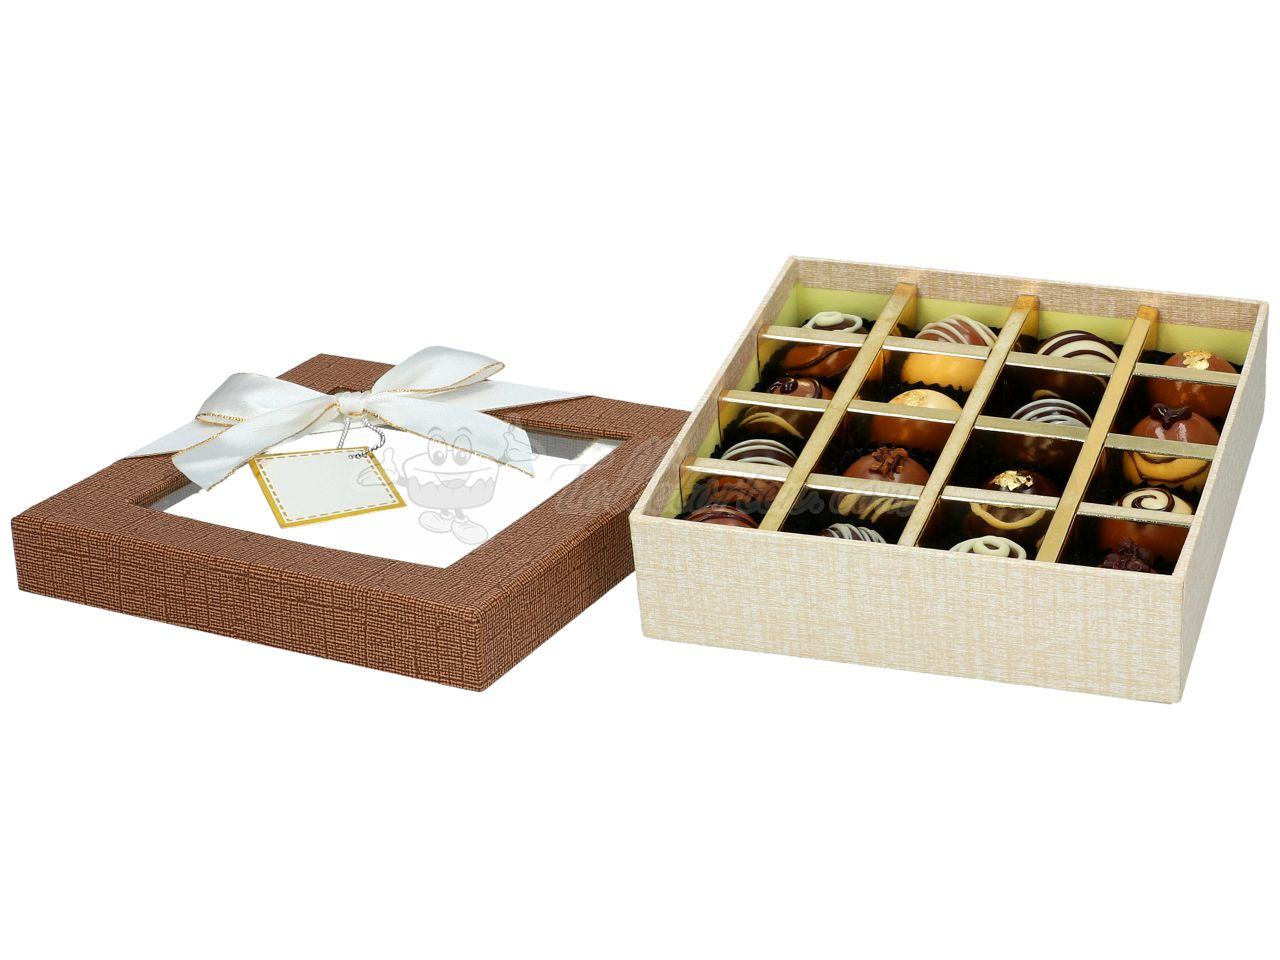 Chocolate Case Treasure für 16 Pralinen